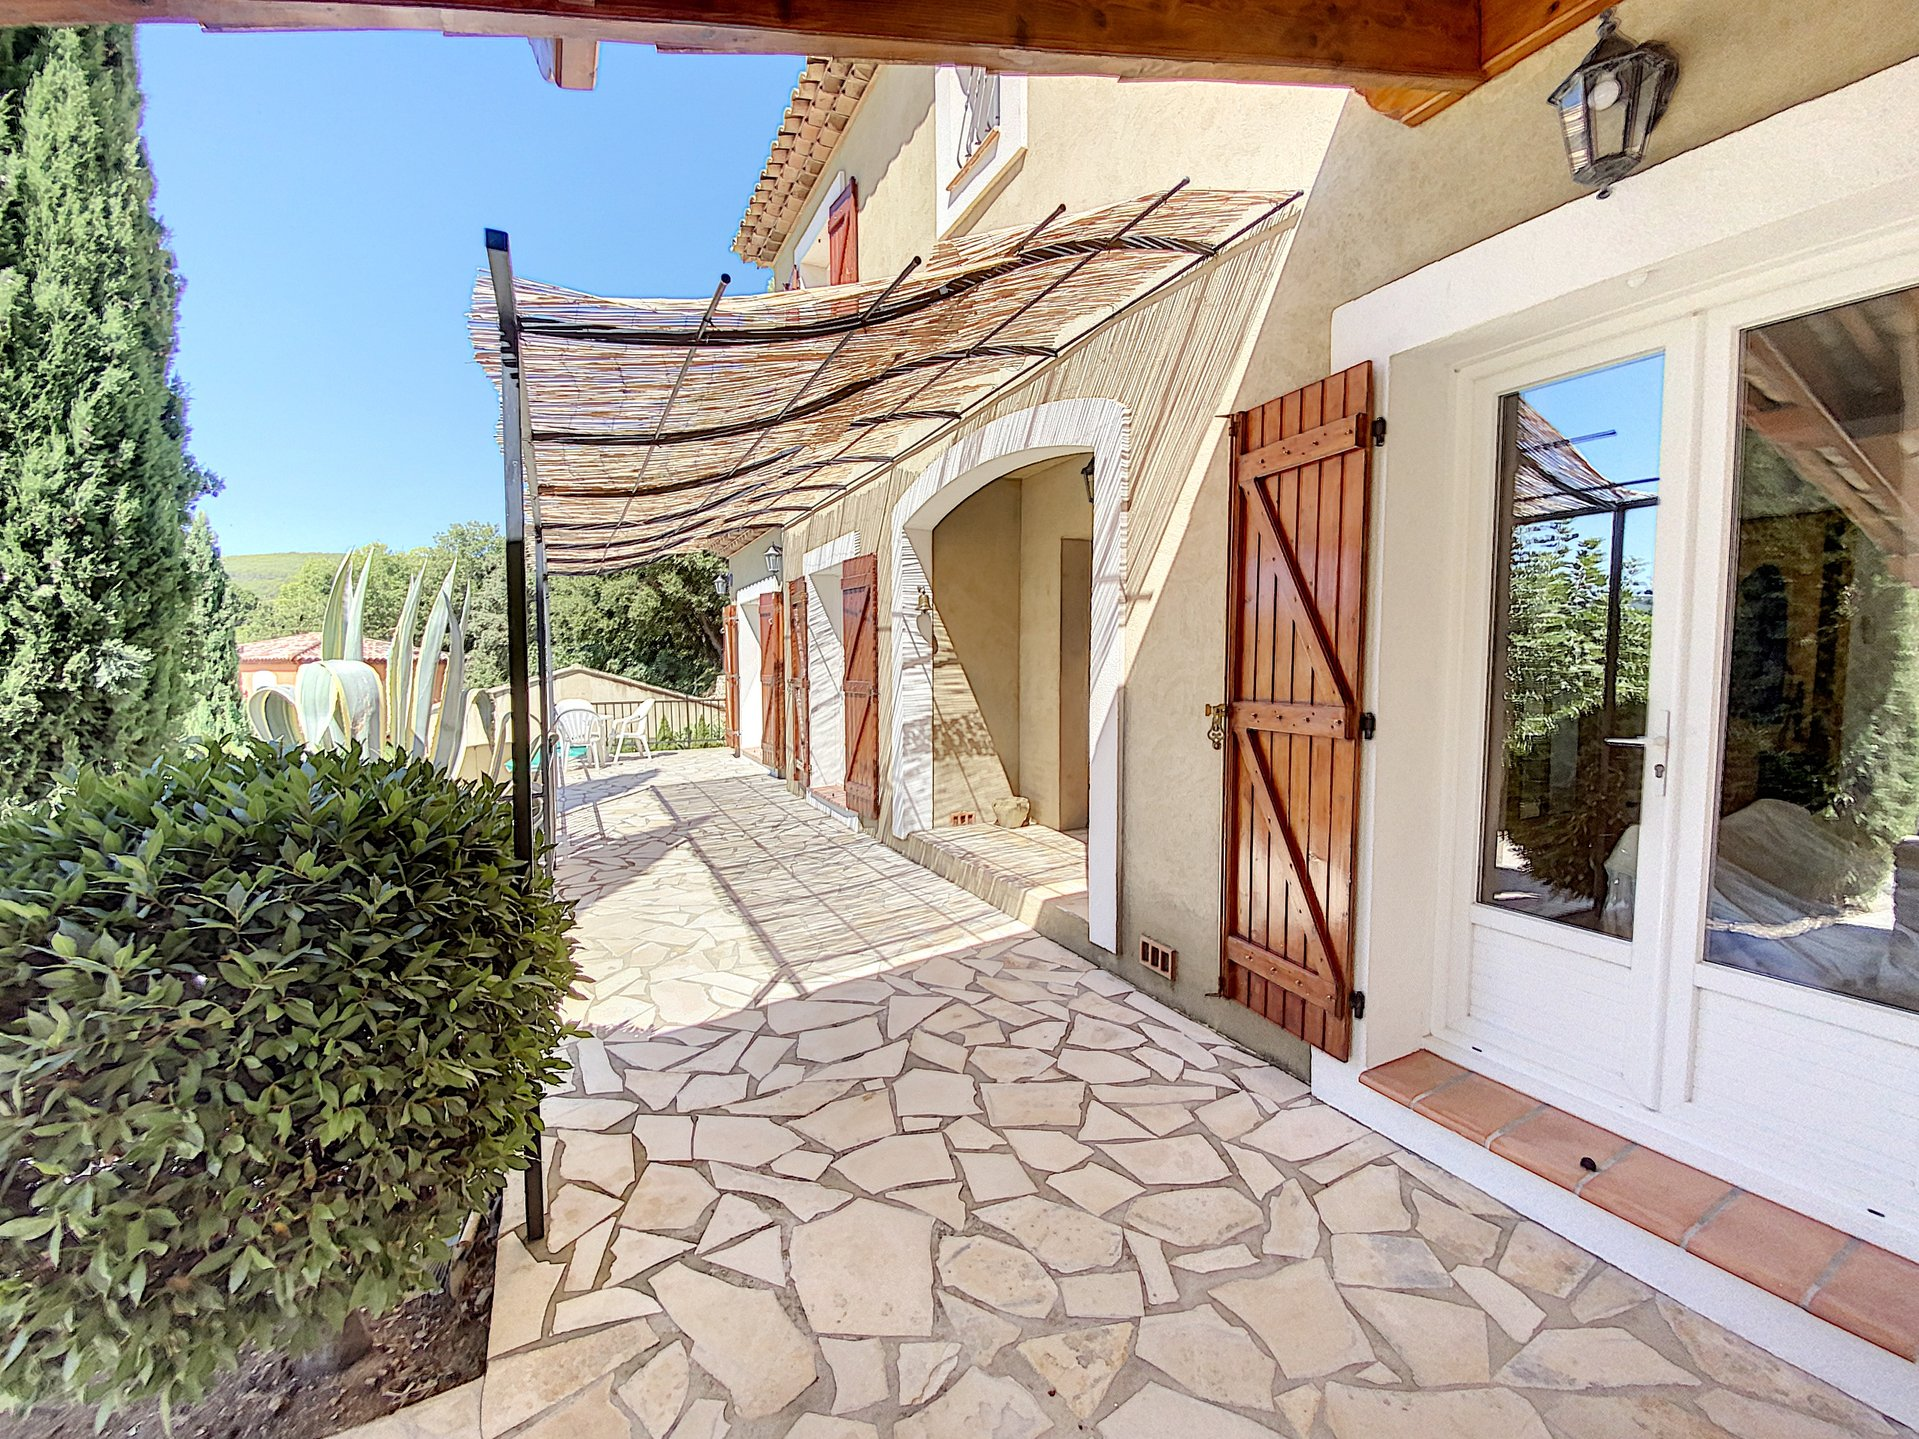 Beautful villa with pool and views, walking distance from the village